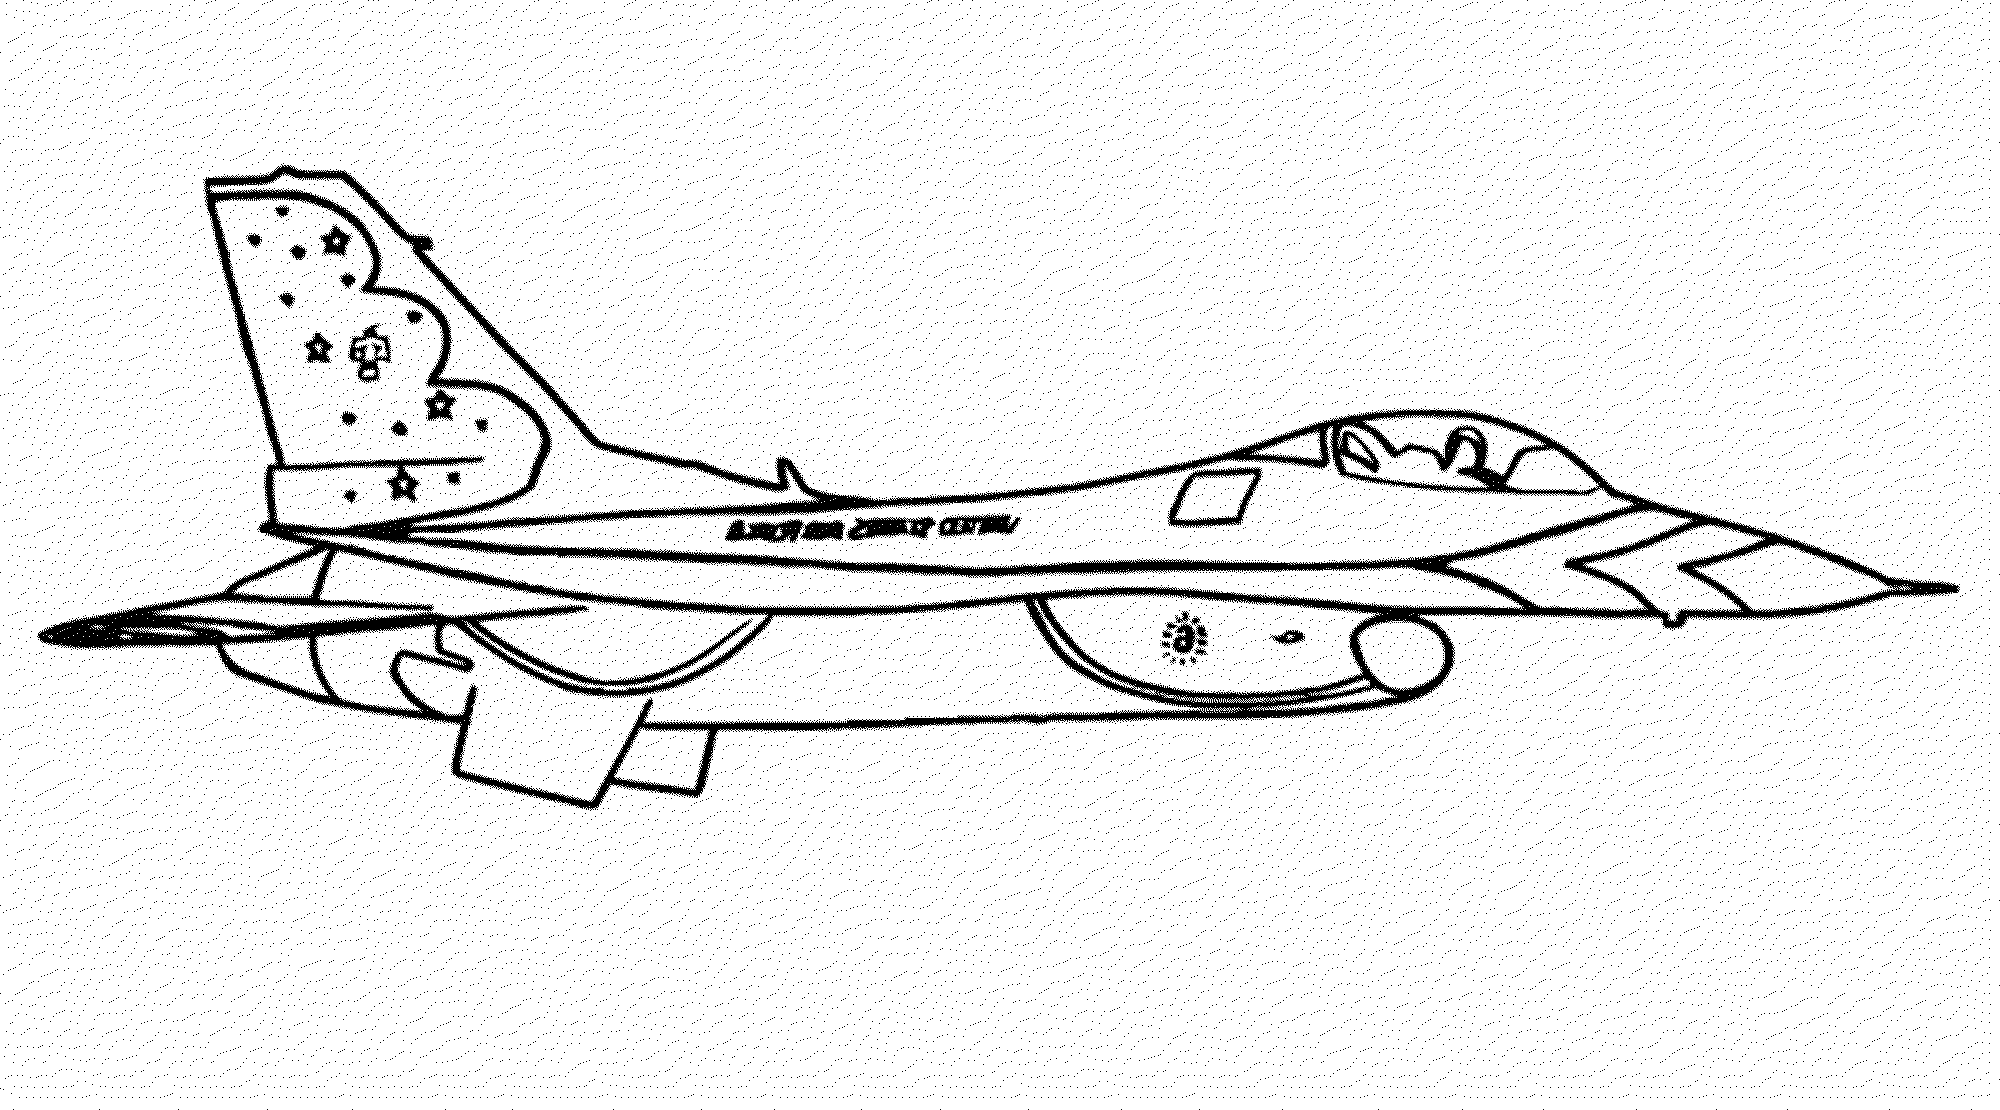 coloring airplane pictures print download the sophisticated transportation of coloring pictures airplane